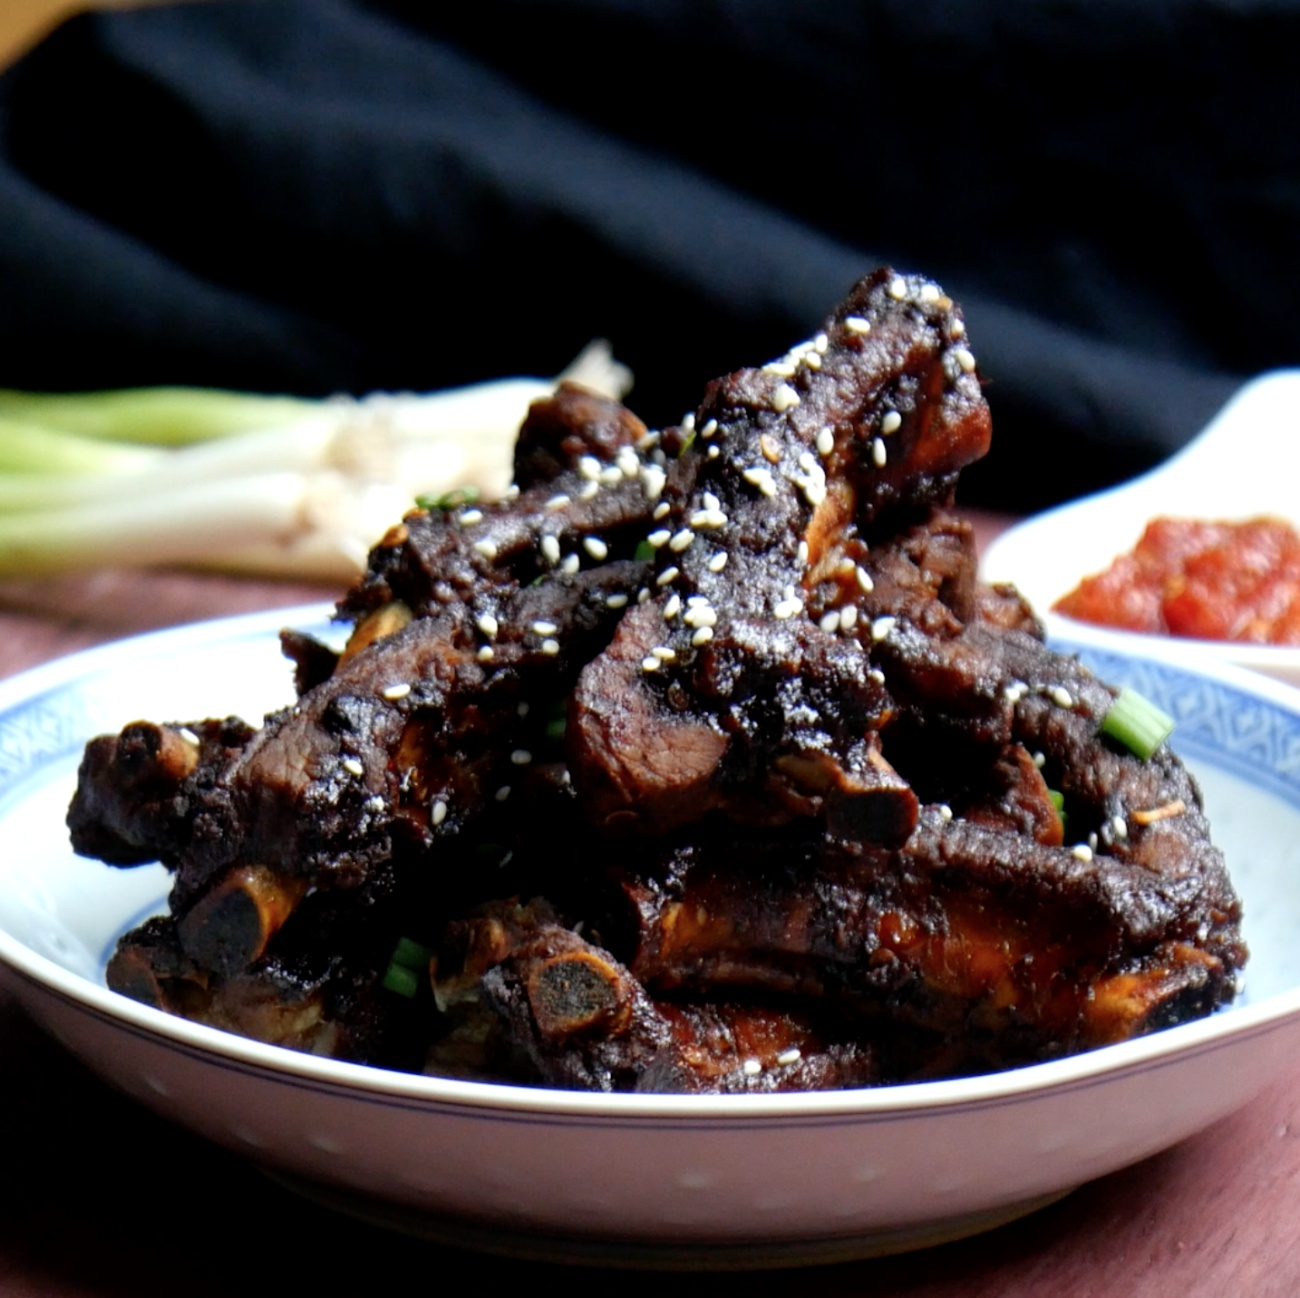 Boiled and Baked Ribs 2